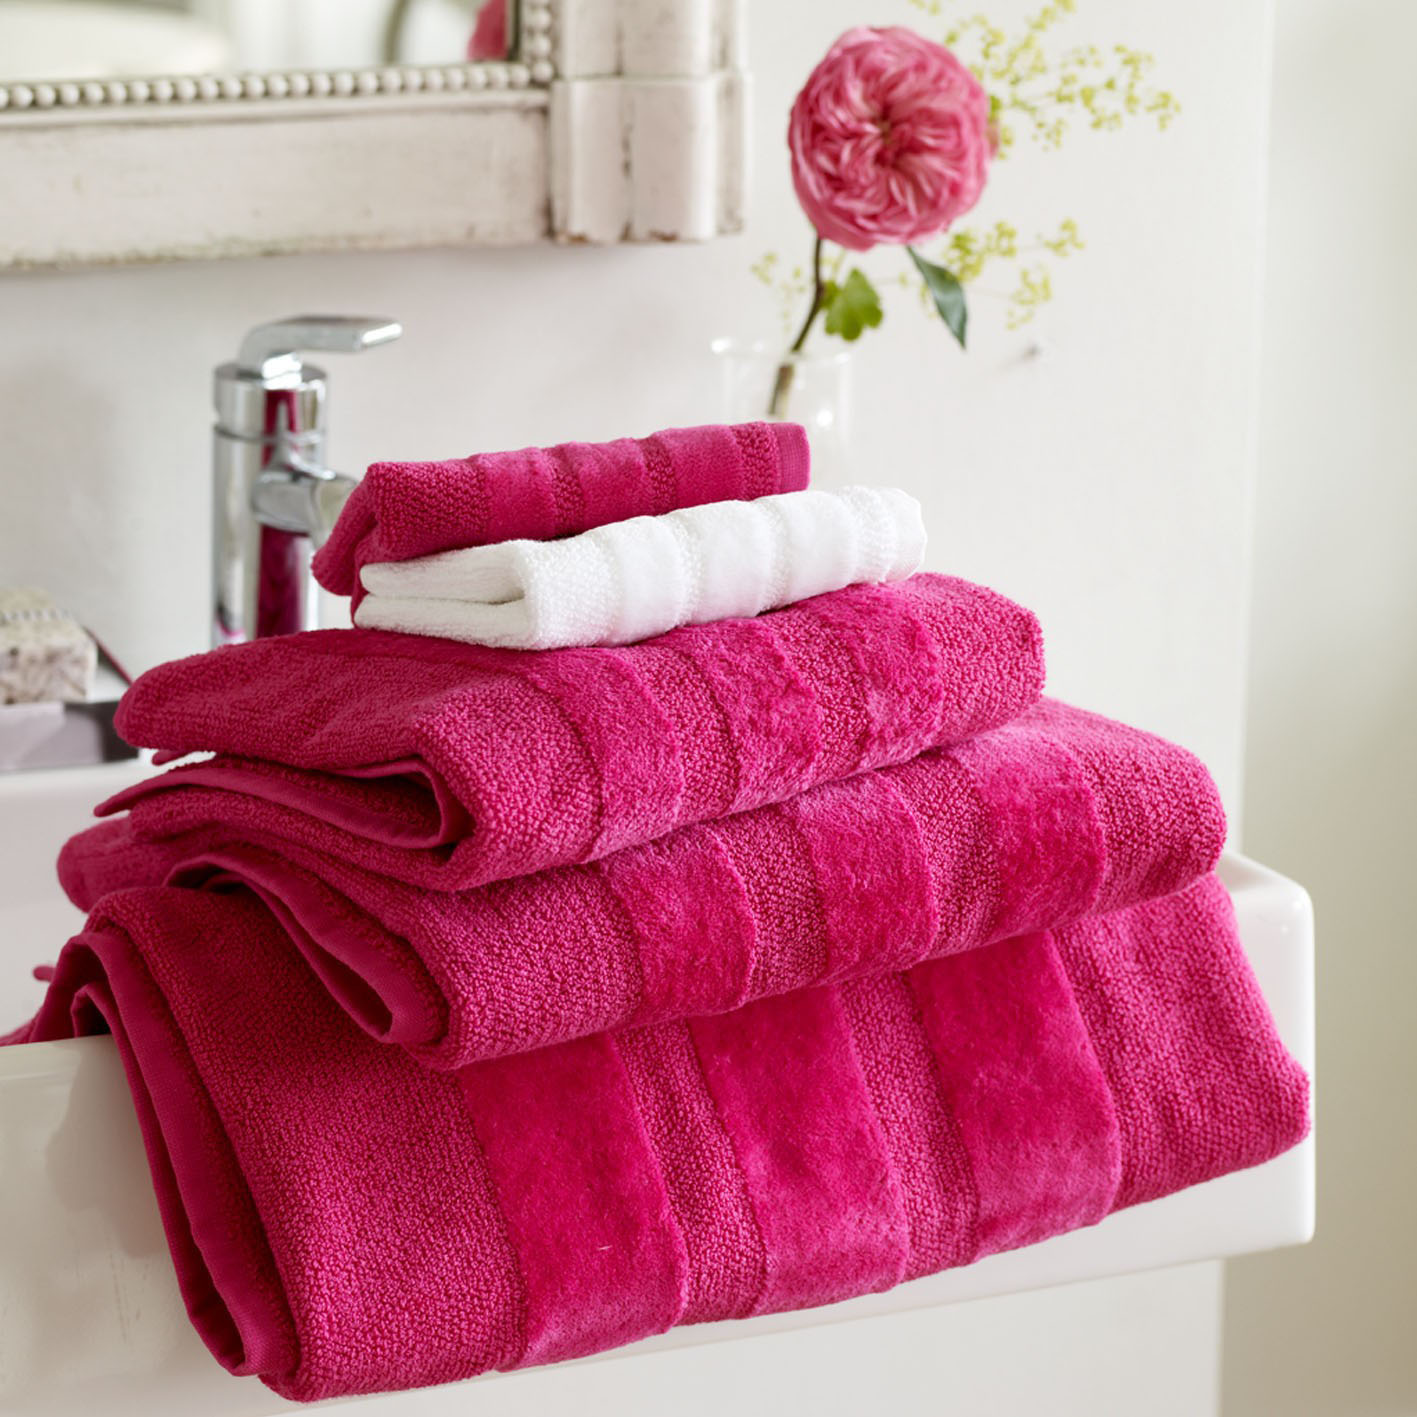 Hard Goods Towels and Robes Buying Agency in India